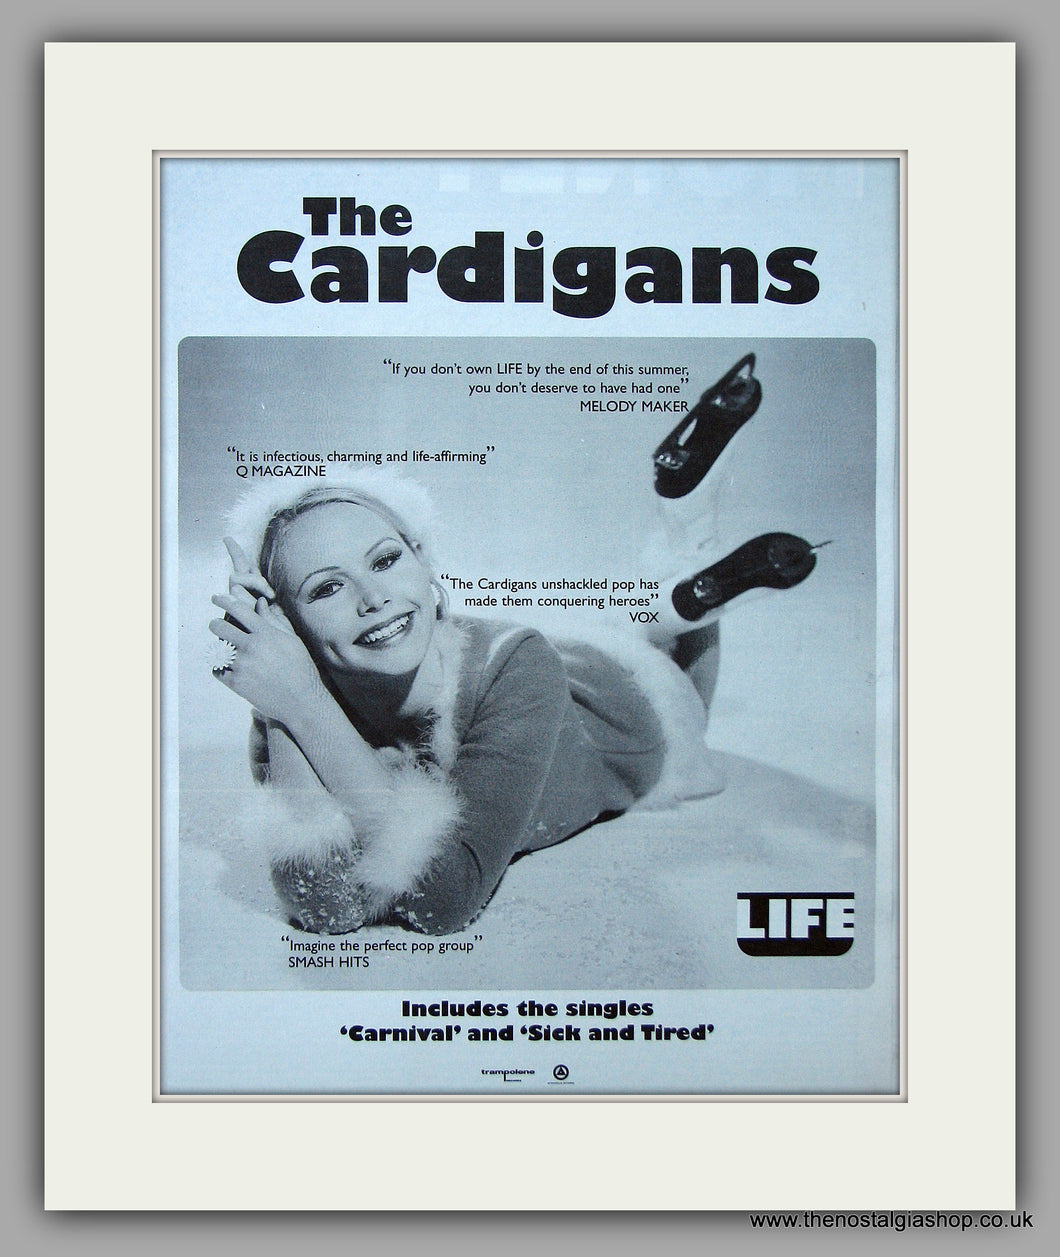 Cardigans (The) - Life.  Original Vintage Advert 1995 (ref AD10693)